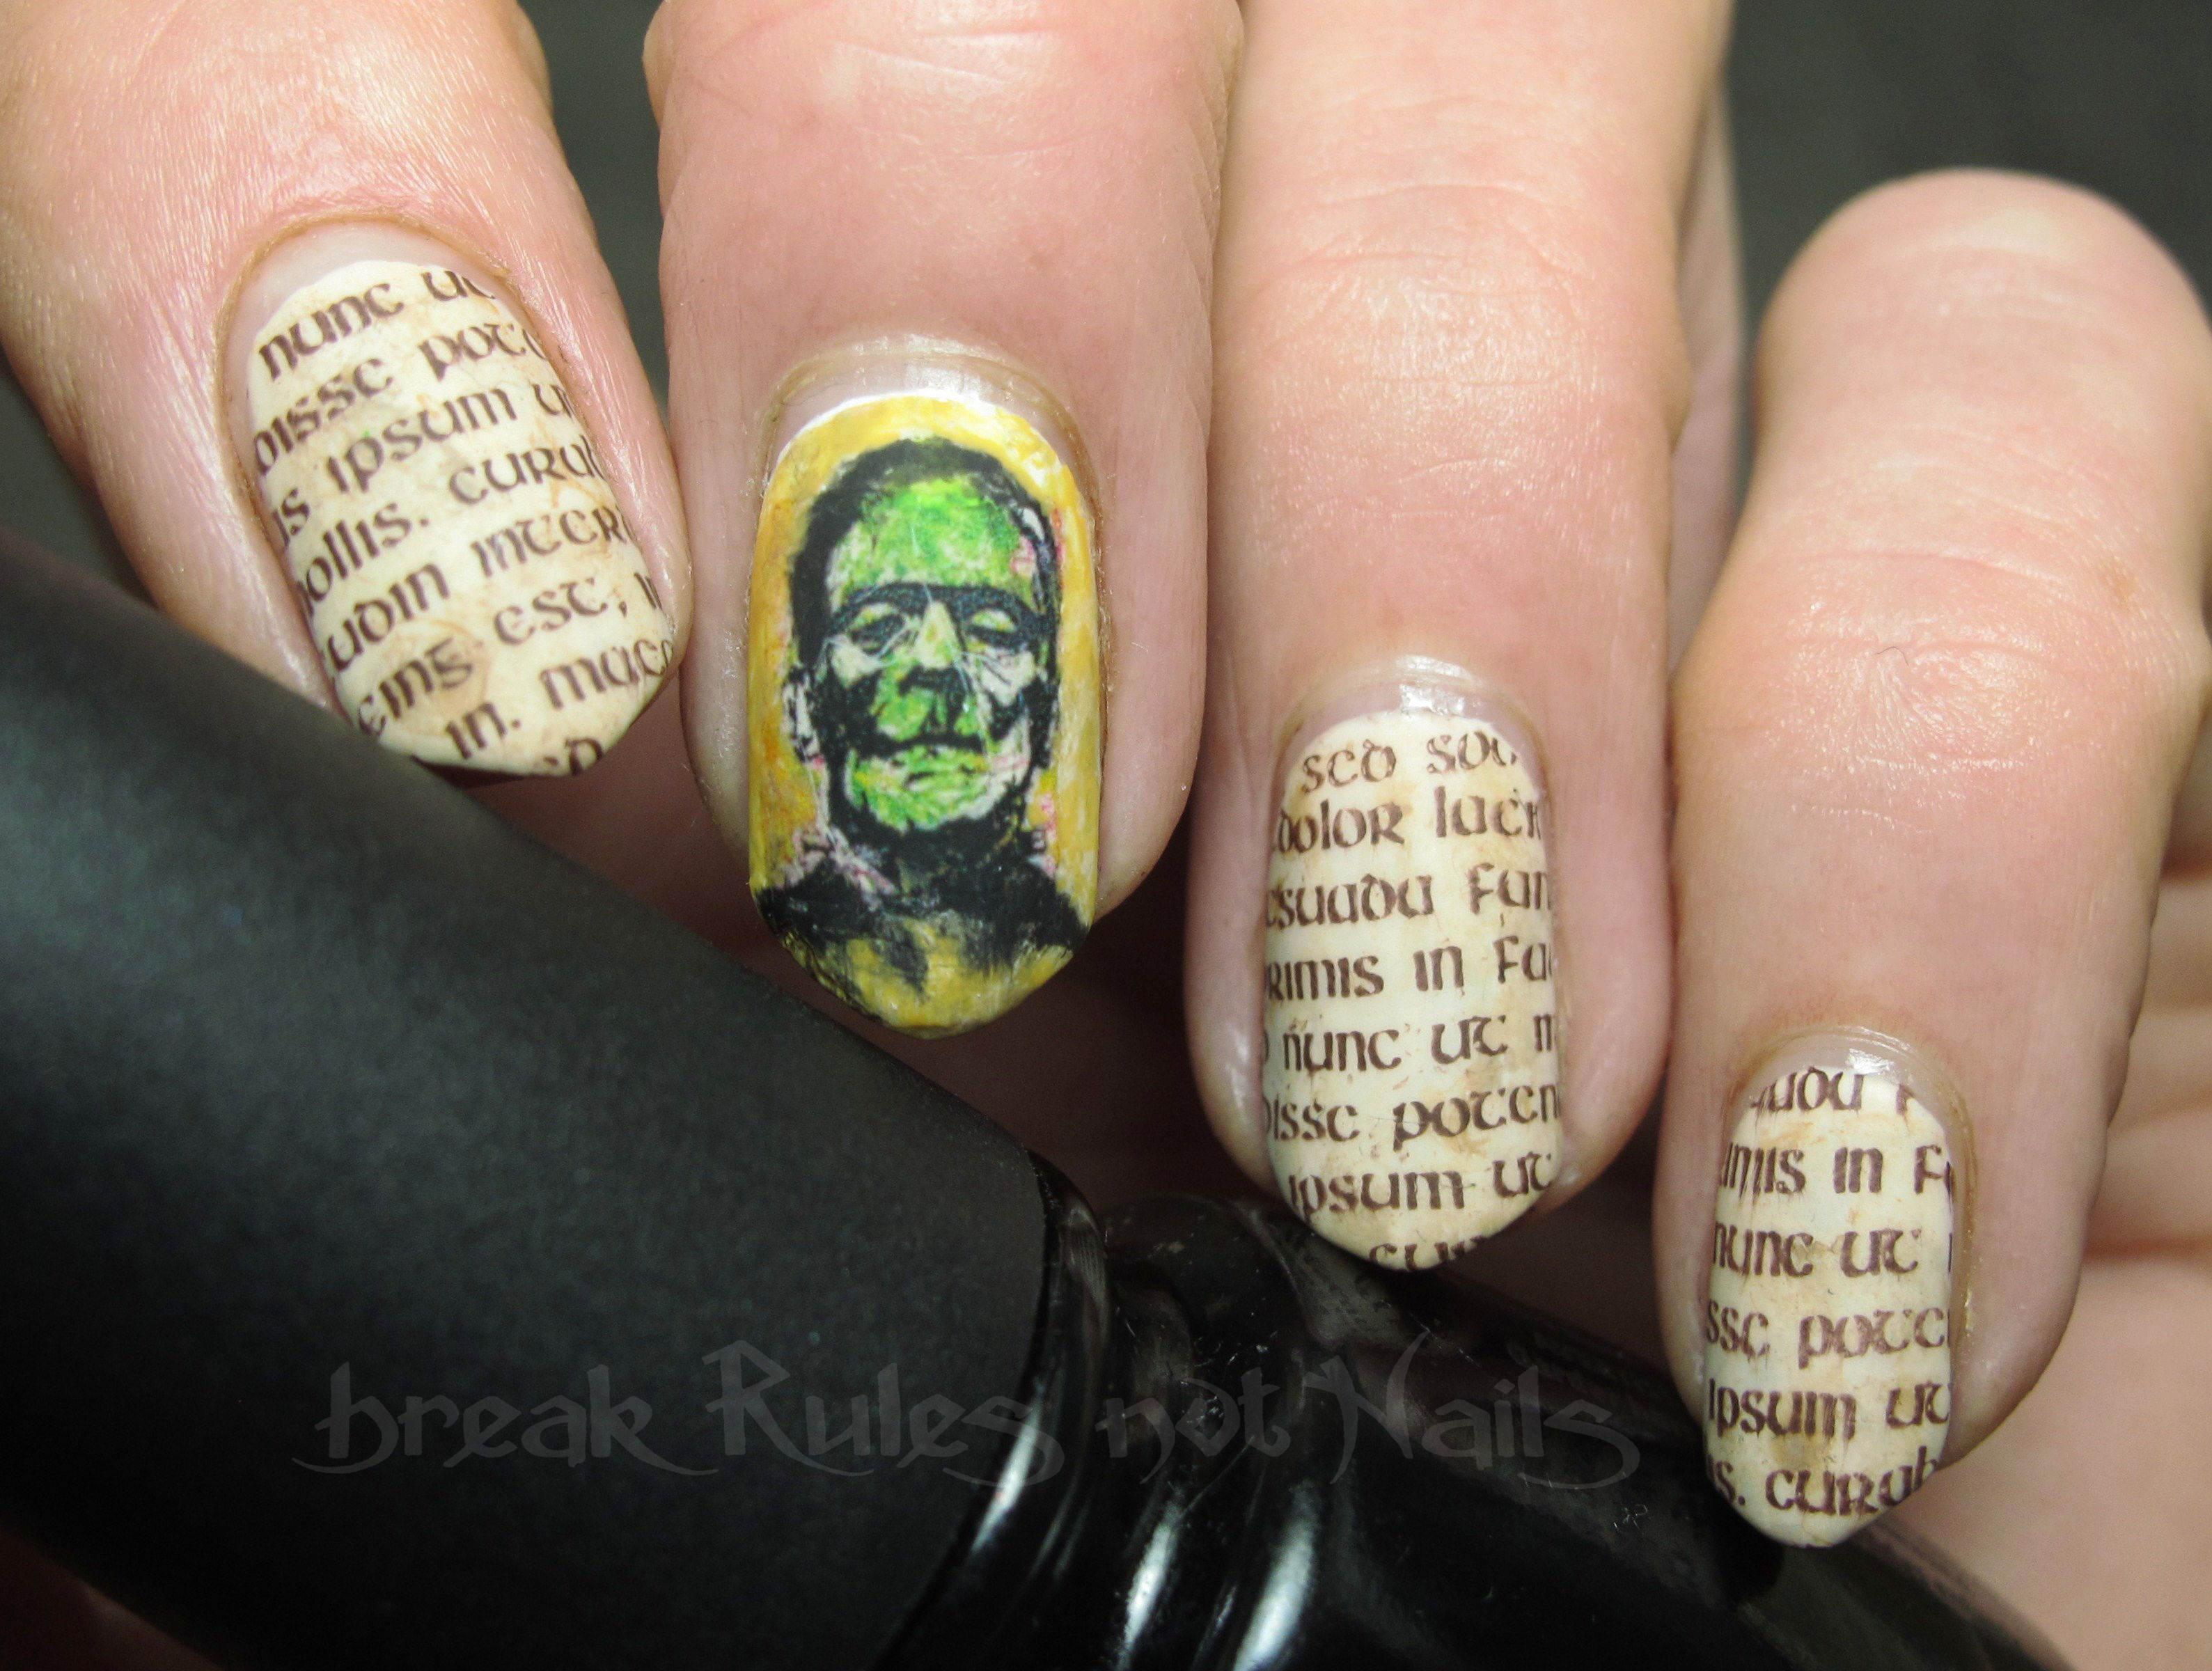 Frankenstein nail art break rules not nails day 24 inspired by a book prinsesfo Image collections